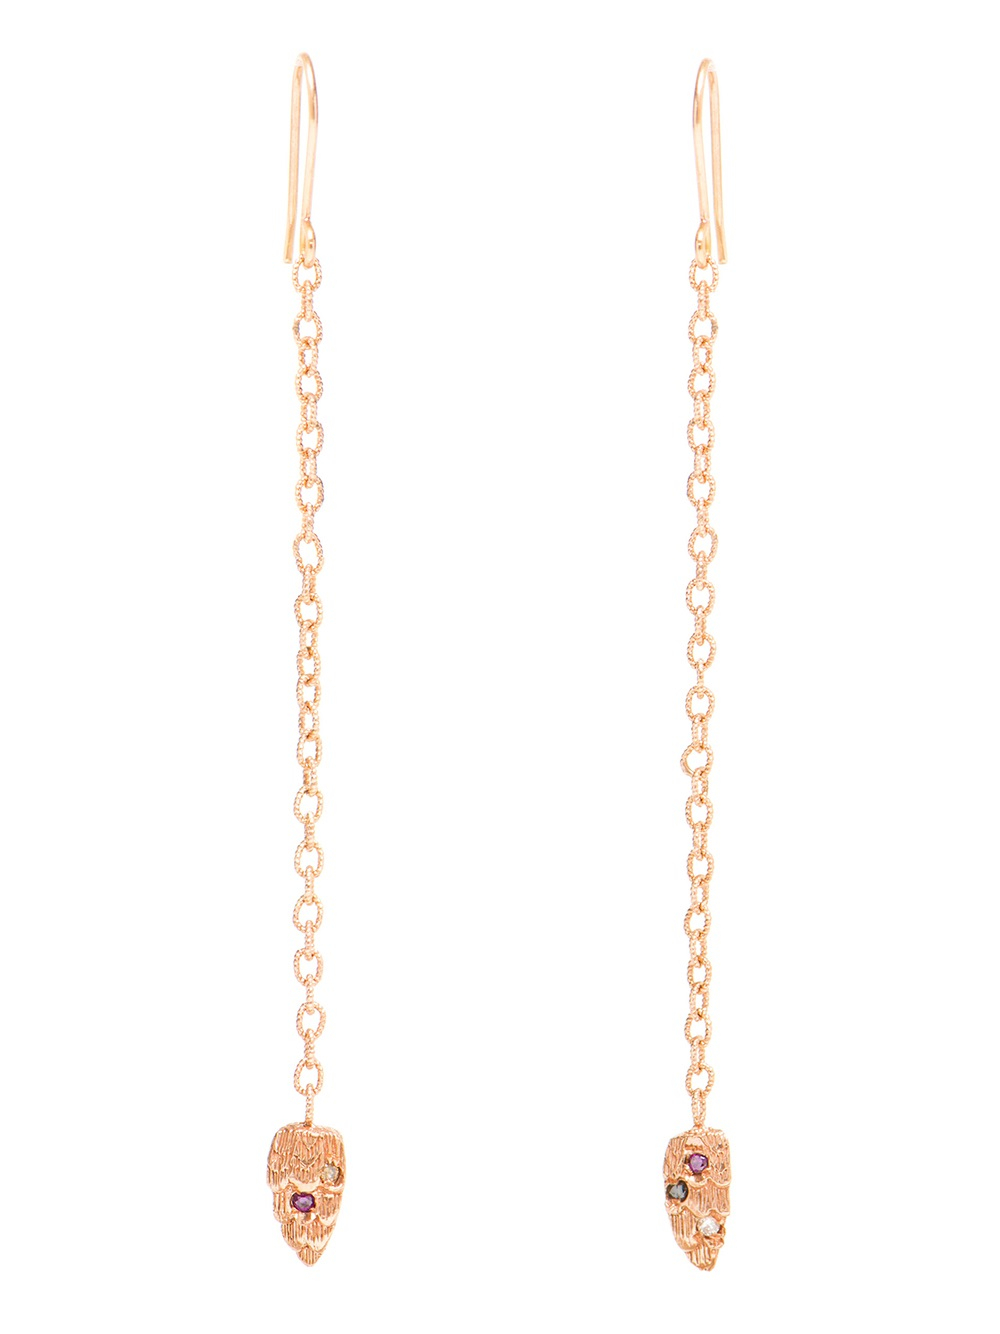 Lyst - Carolina bucci 18karat Pink Gold and Diamond Owl Chain ...